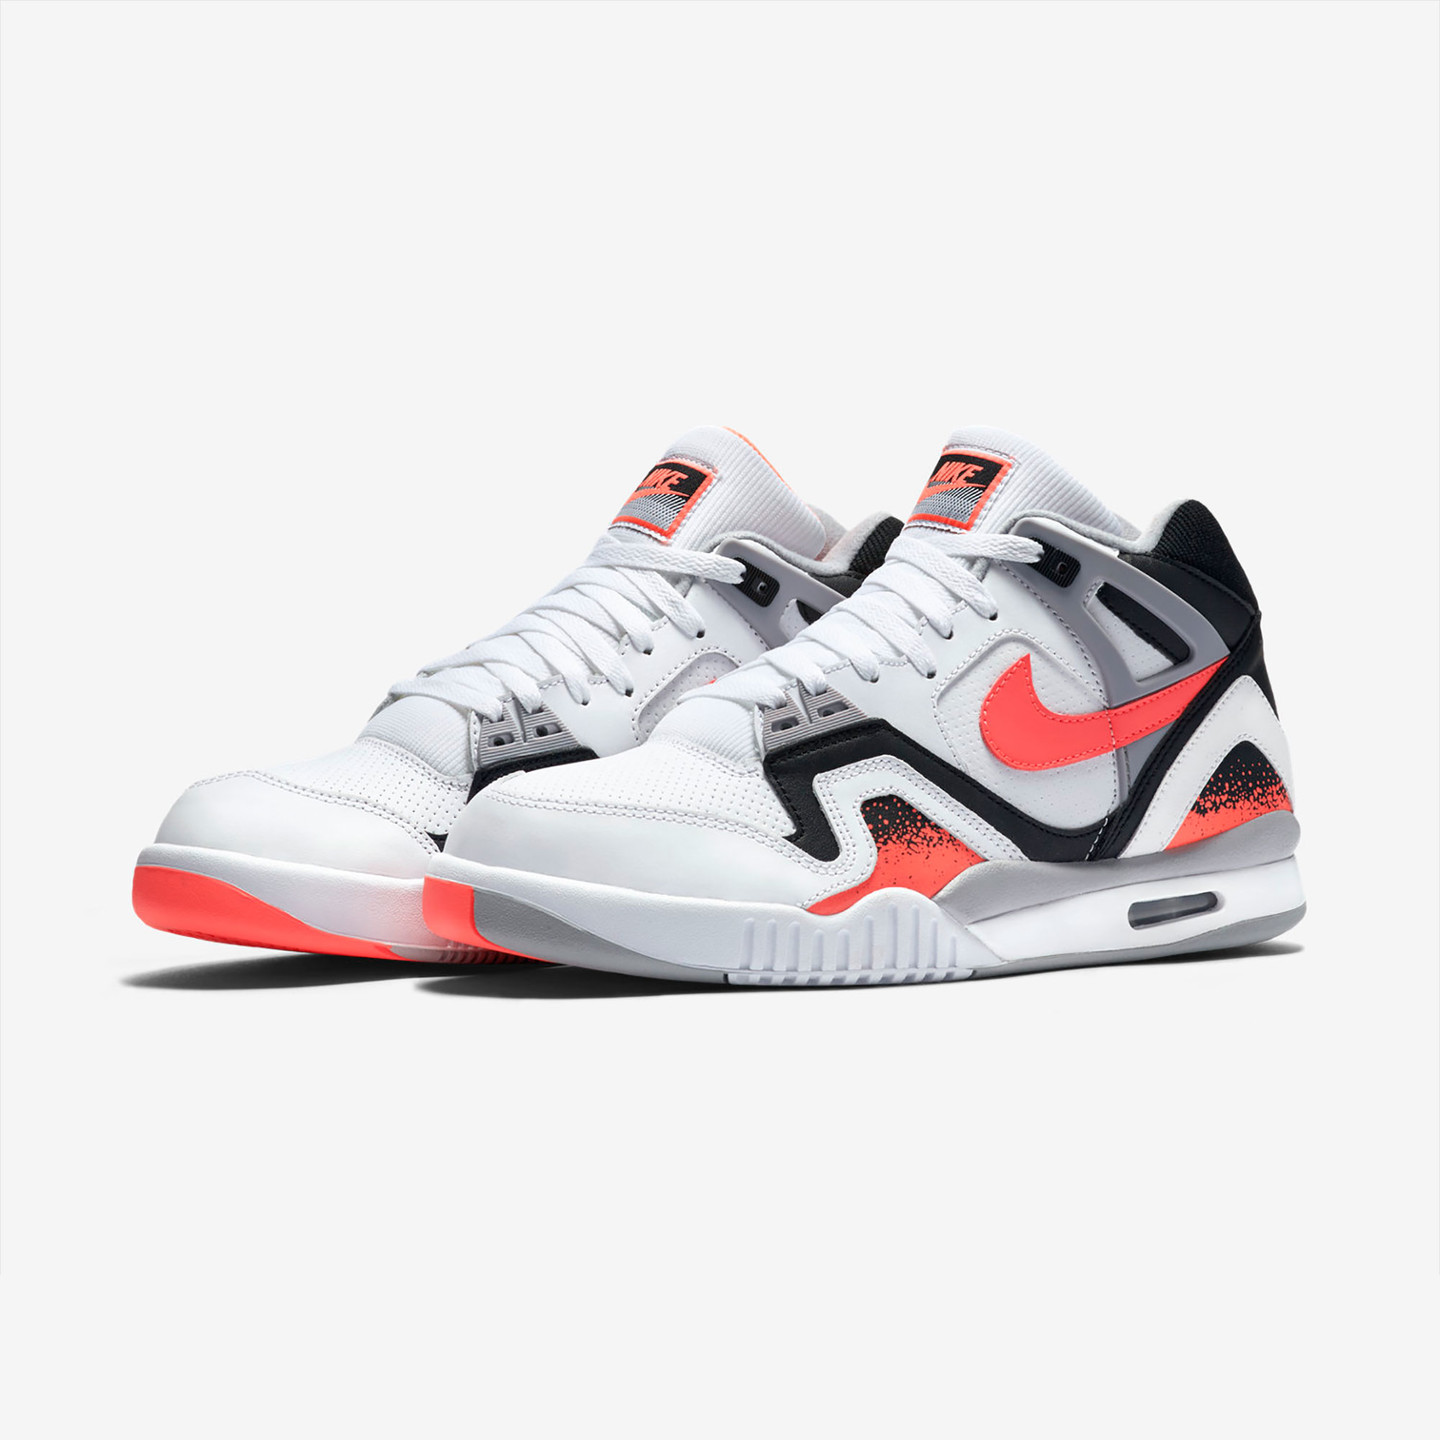 Nike Air Tech Challenge II White / Hot Lava 318408-104-43